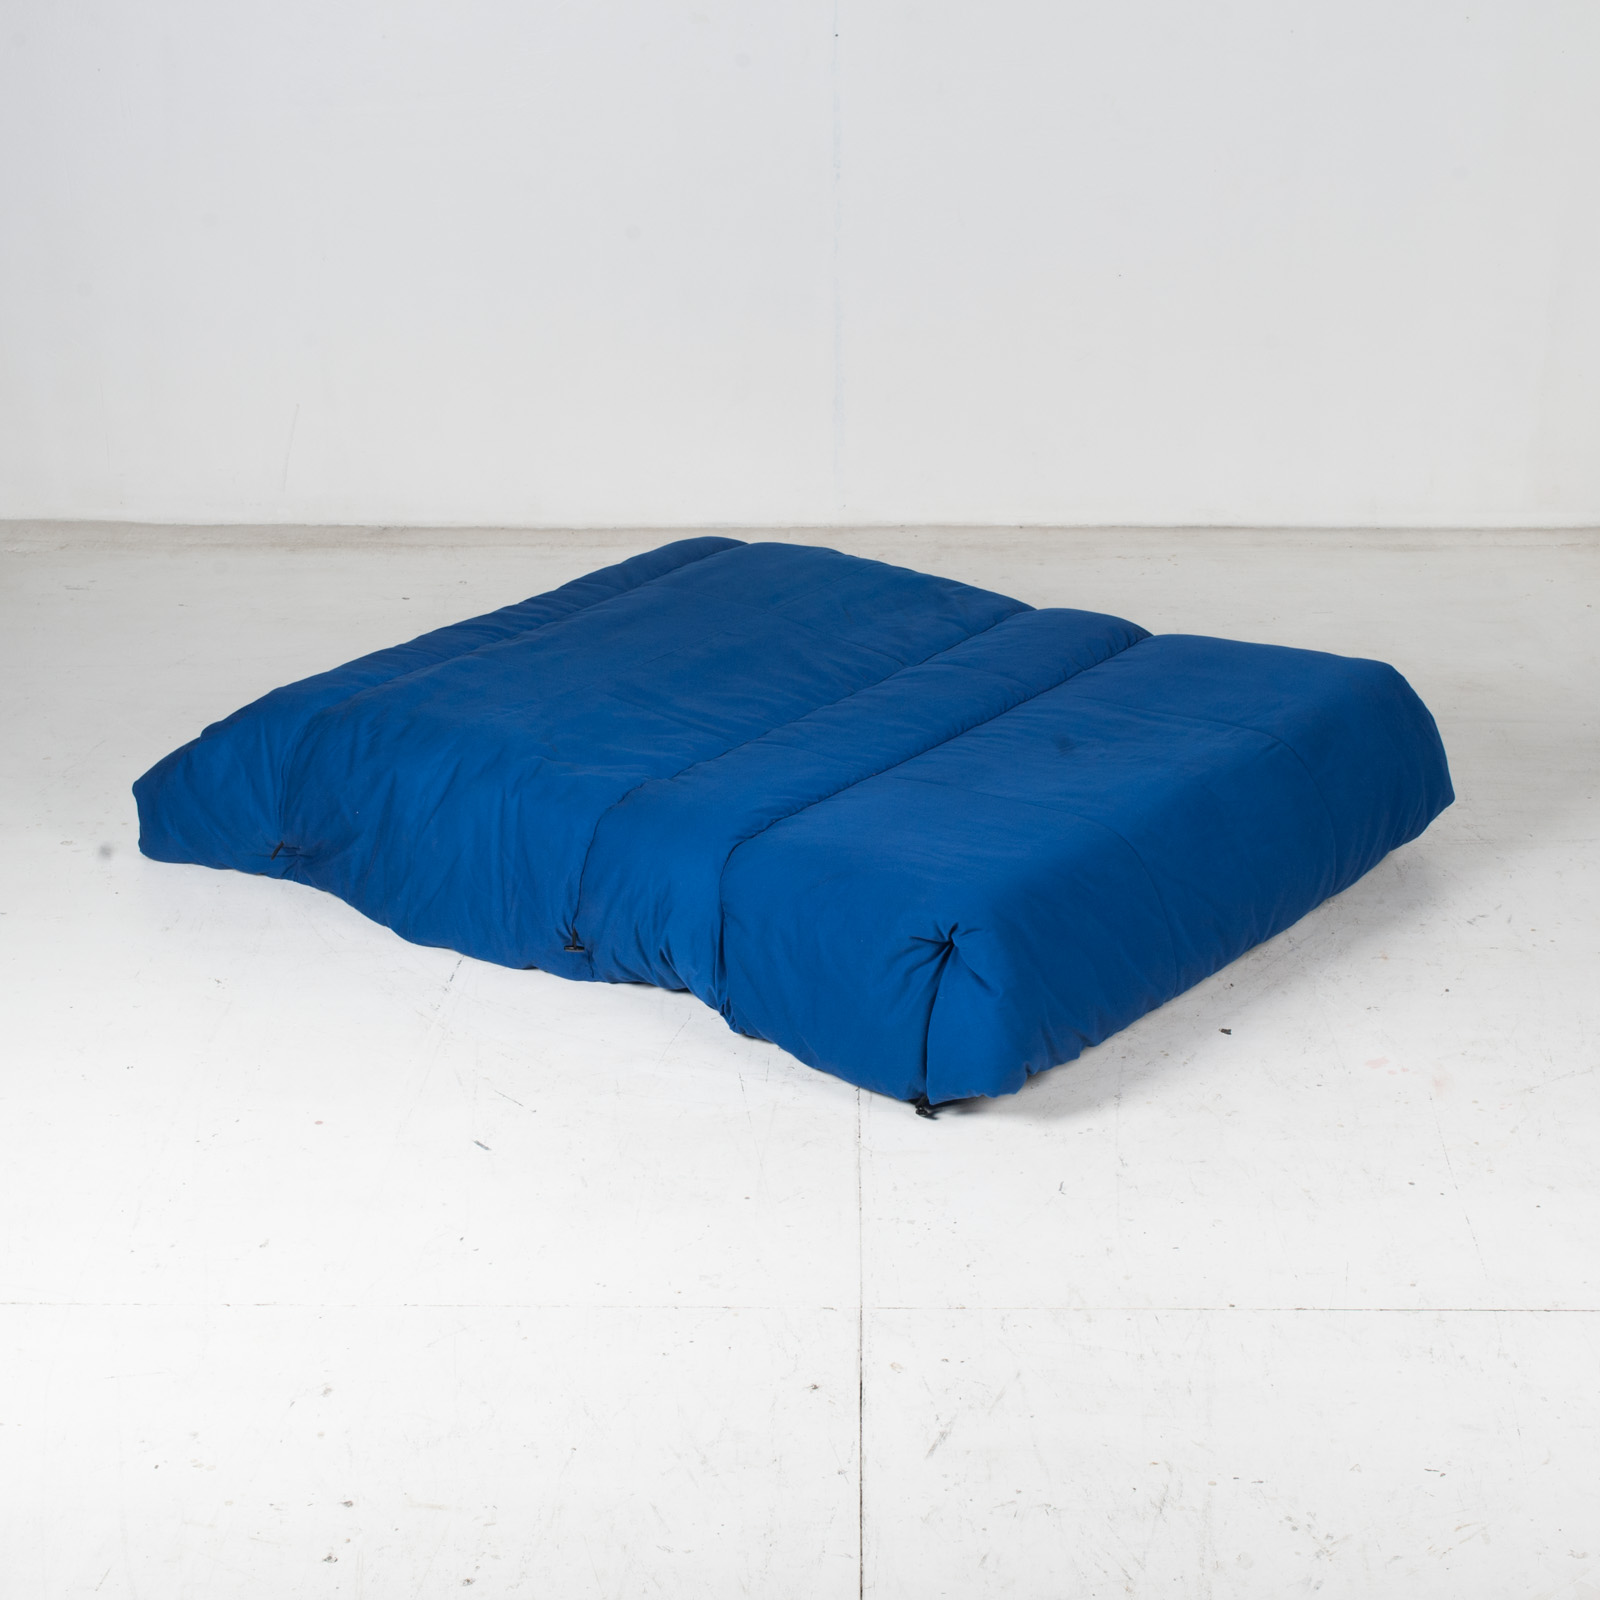 Sofa Bed By Ligne Roset In Blue Upholstery, 1960s, France13